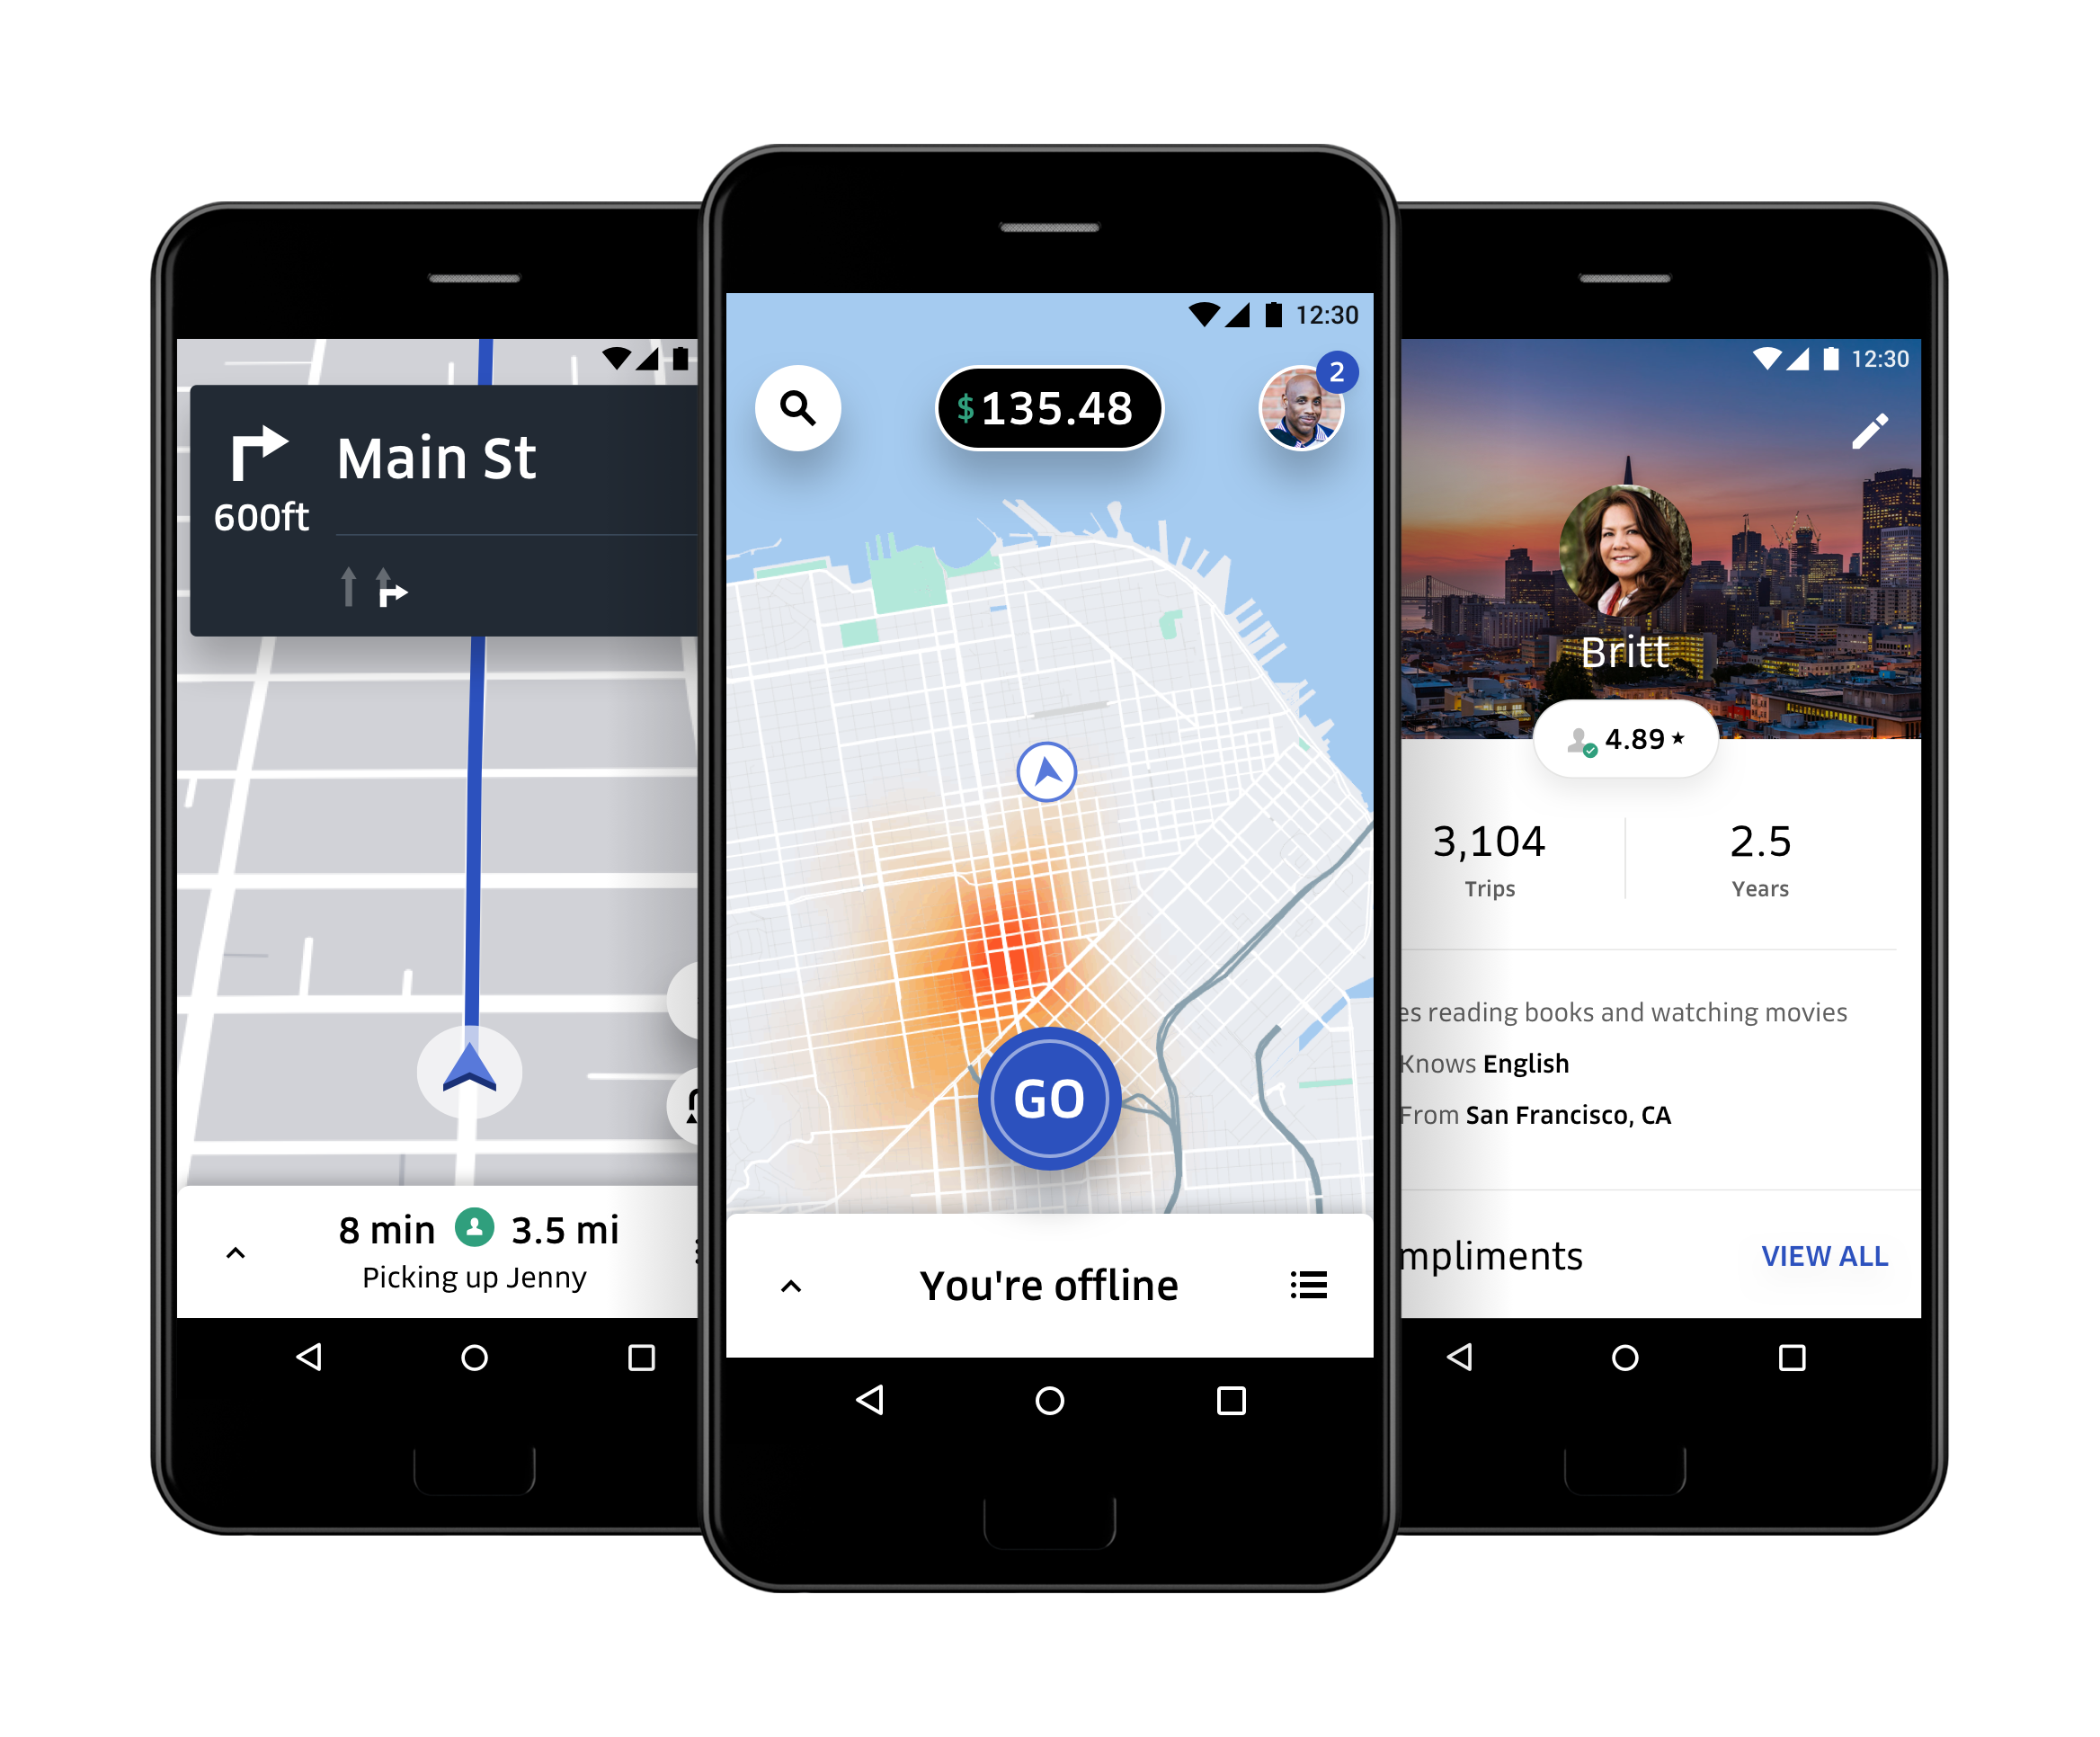 Image result for Uber like Layout of the App